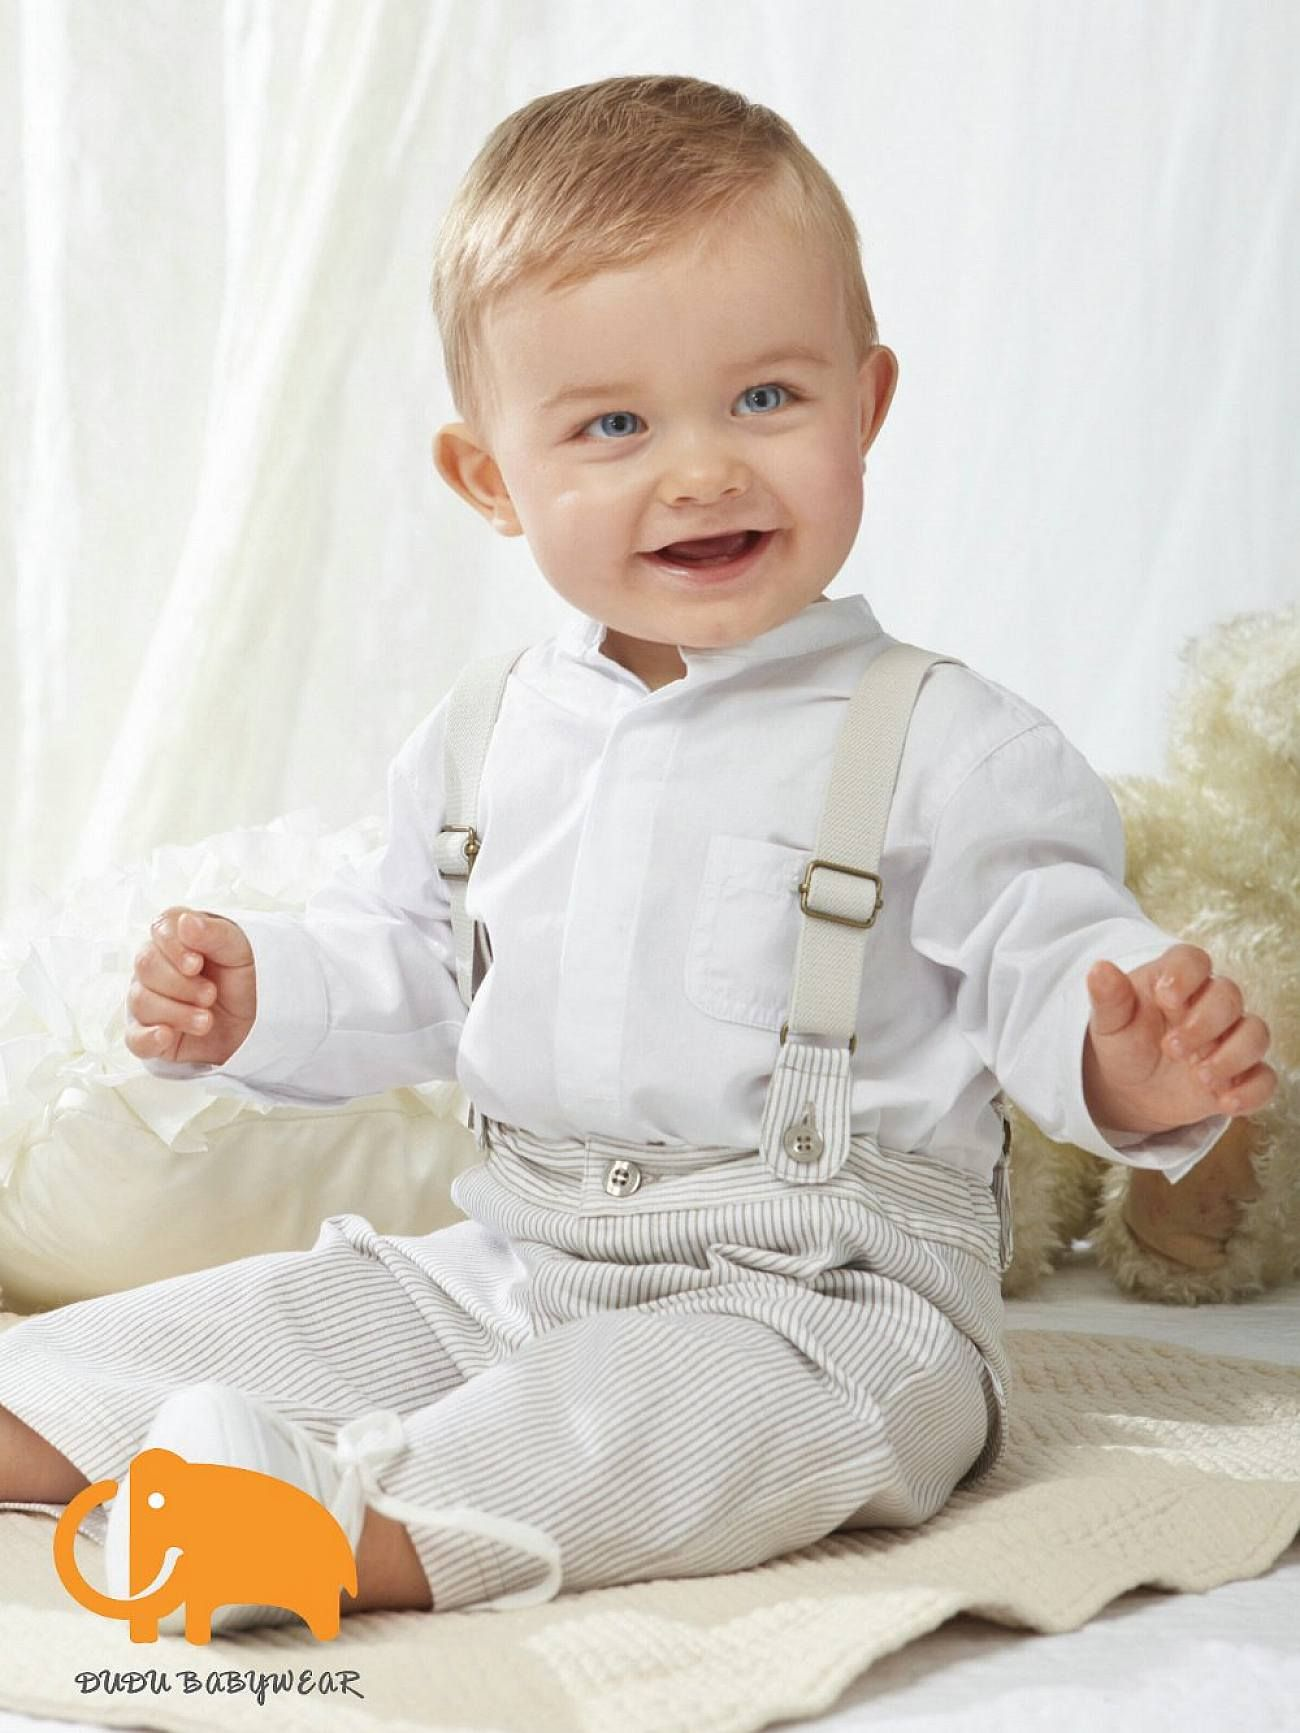 Images of Baby Boy Easter Suits - The Miracle of Easter